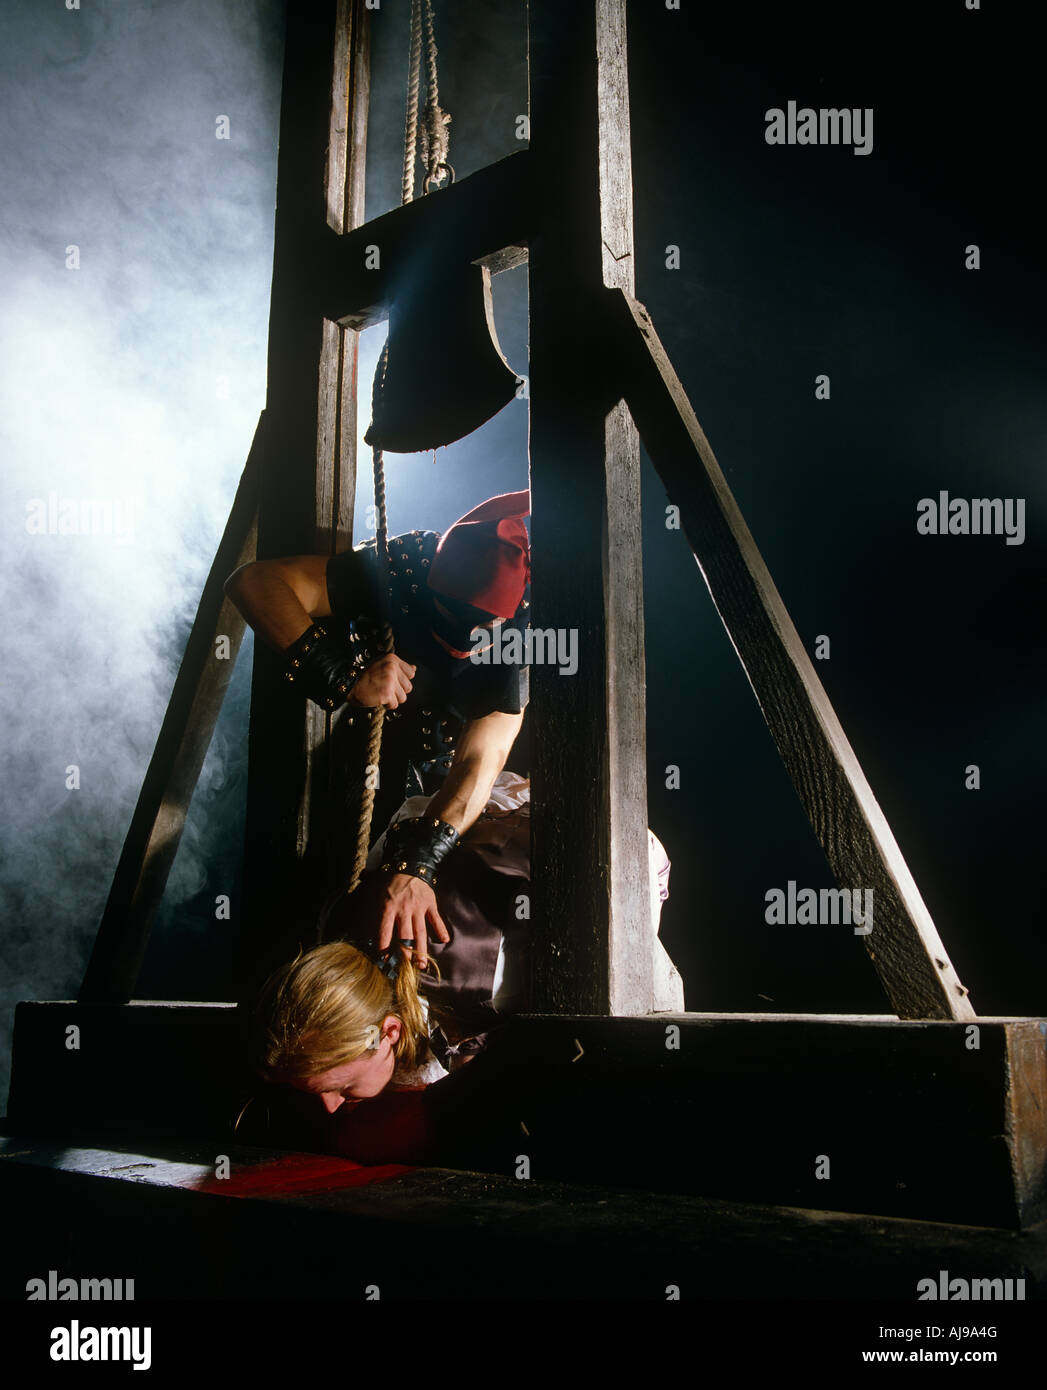 Guillotine Stockfotos & Guillotine Bilder - Alamy